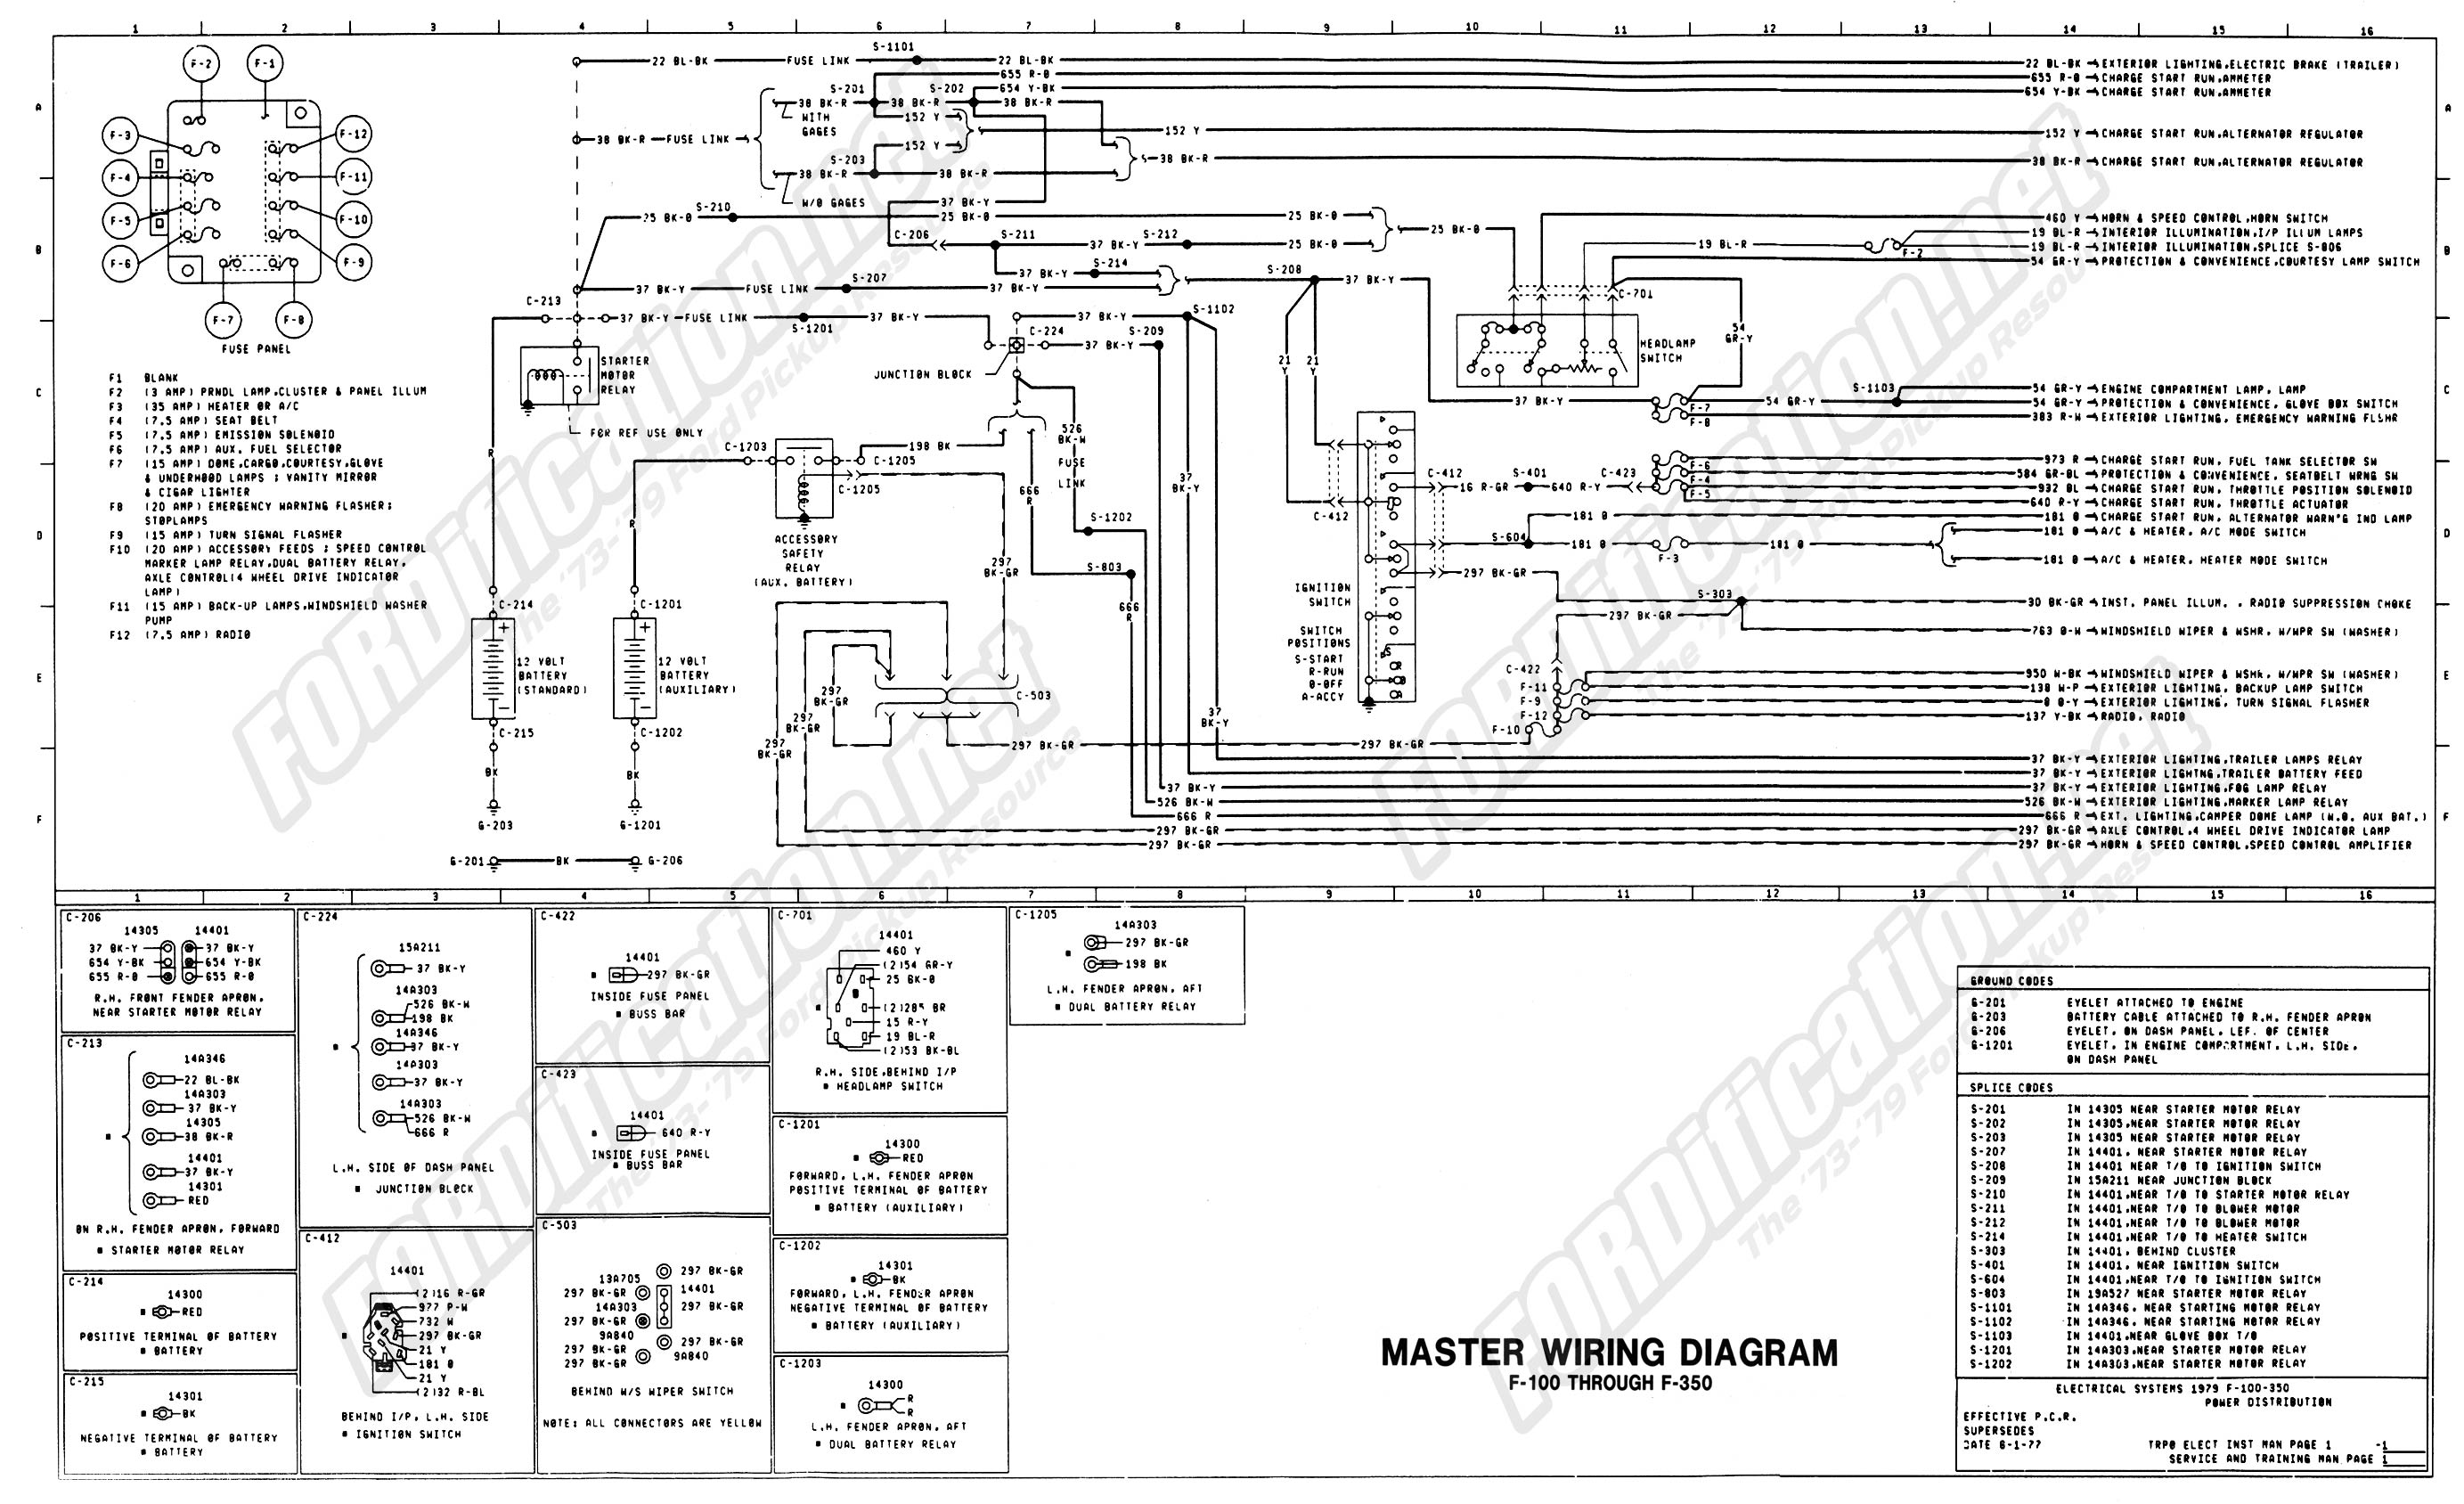 06 Sterling Fuse Panel Diagram Wiring Schematics Ford Box 1999 Online 2006 Truck Cruise Control